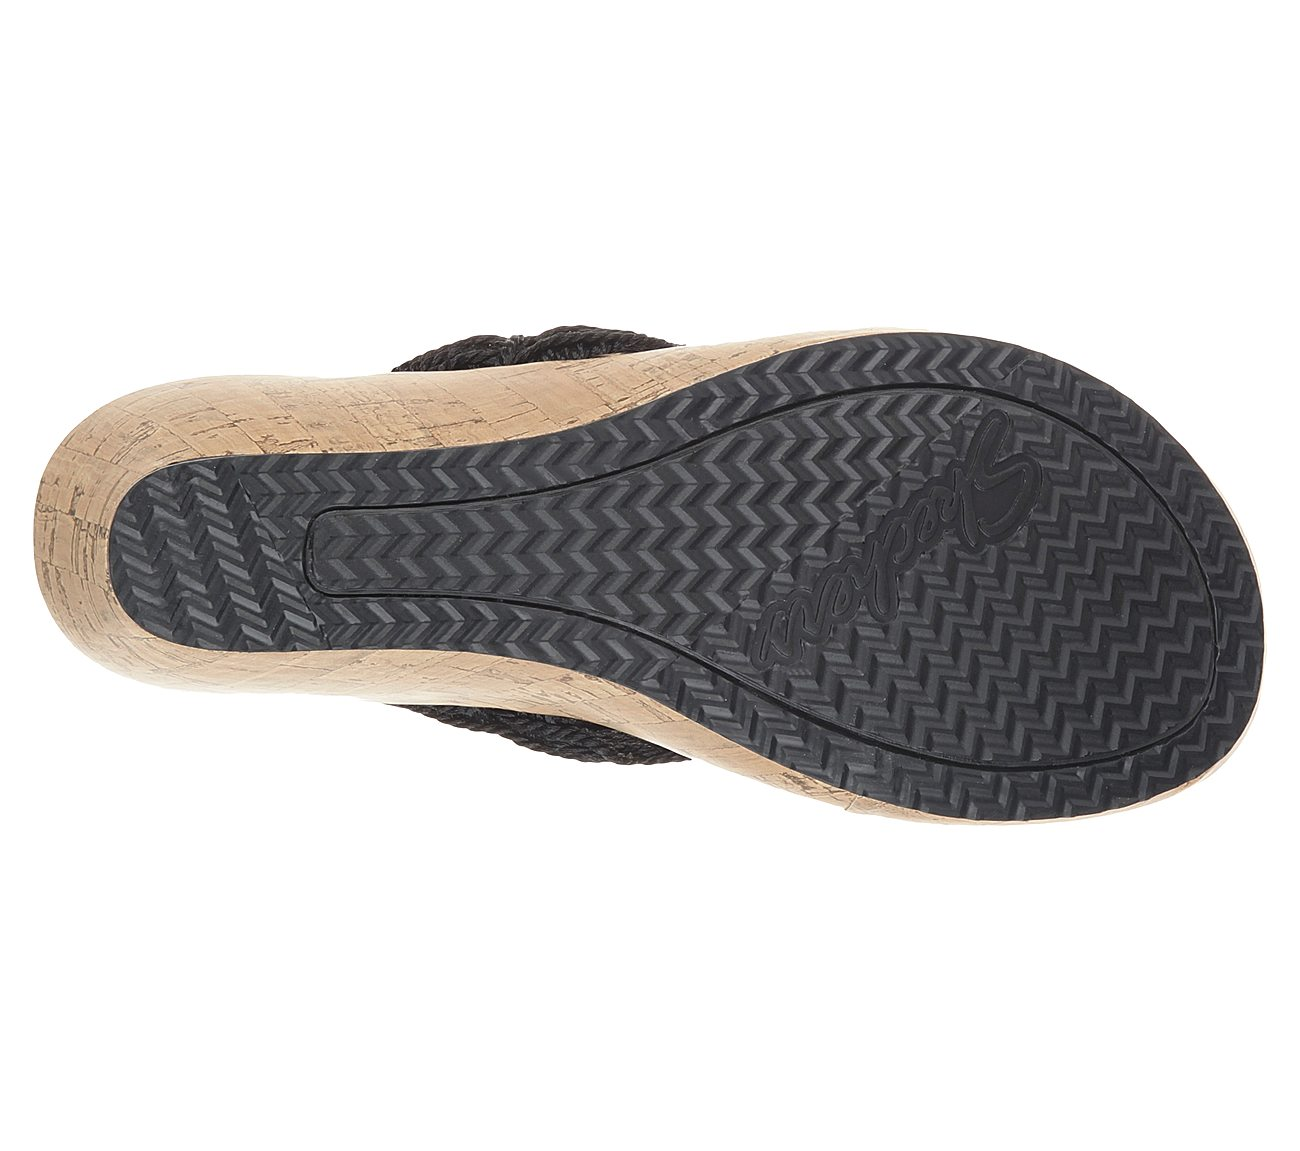 345f75980a3b Buy SKECHERS Beverlee - Crush Thong Sandals Shoes only  55.00